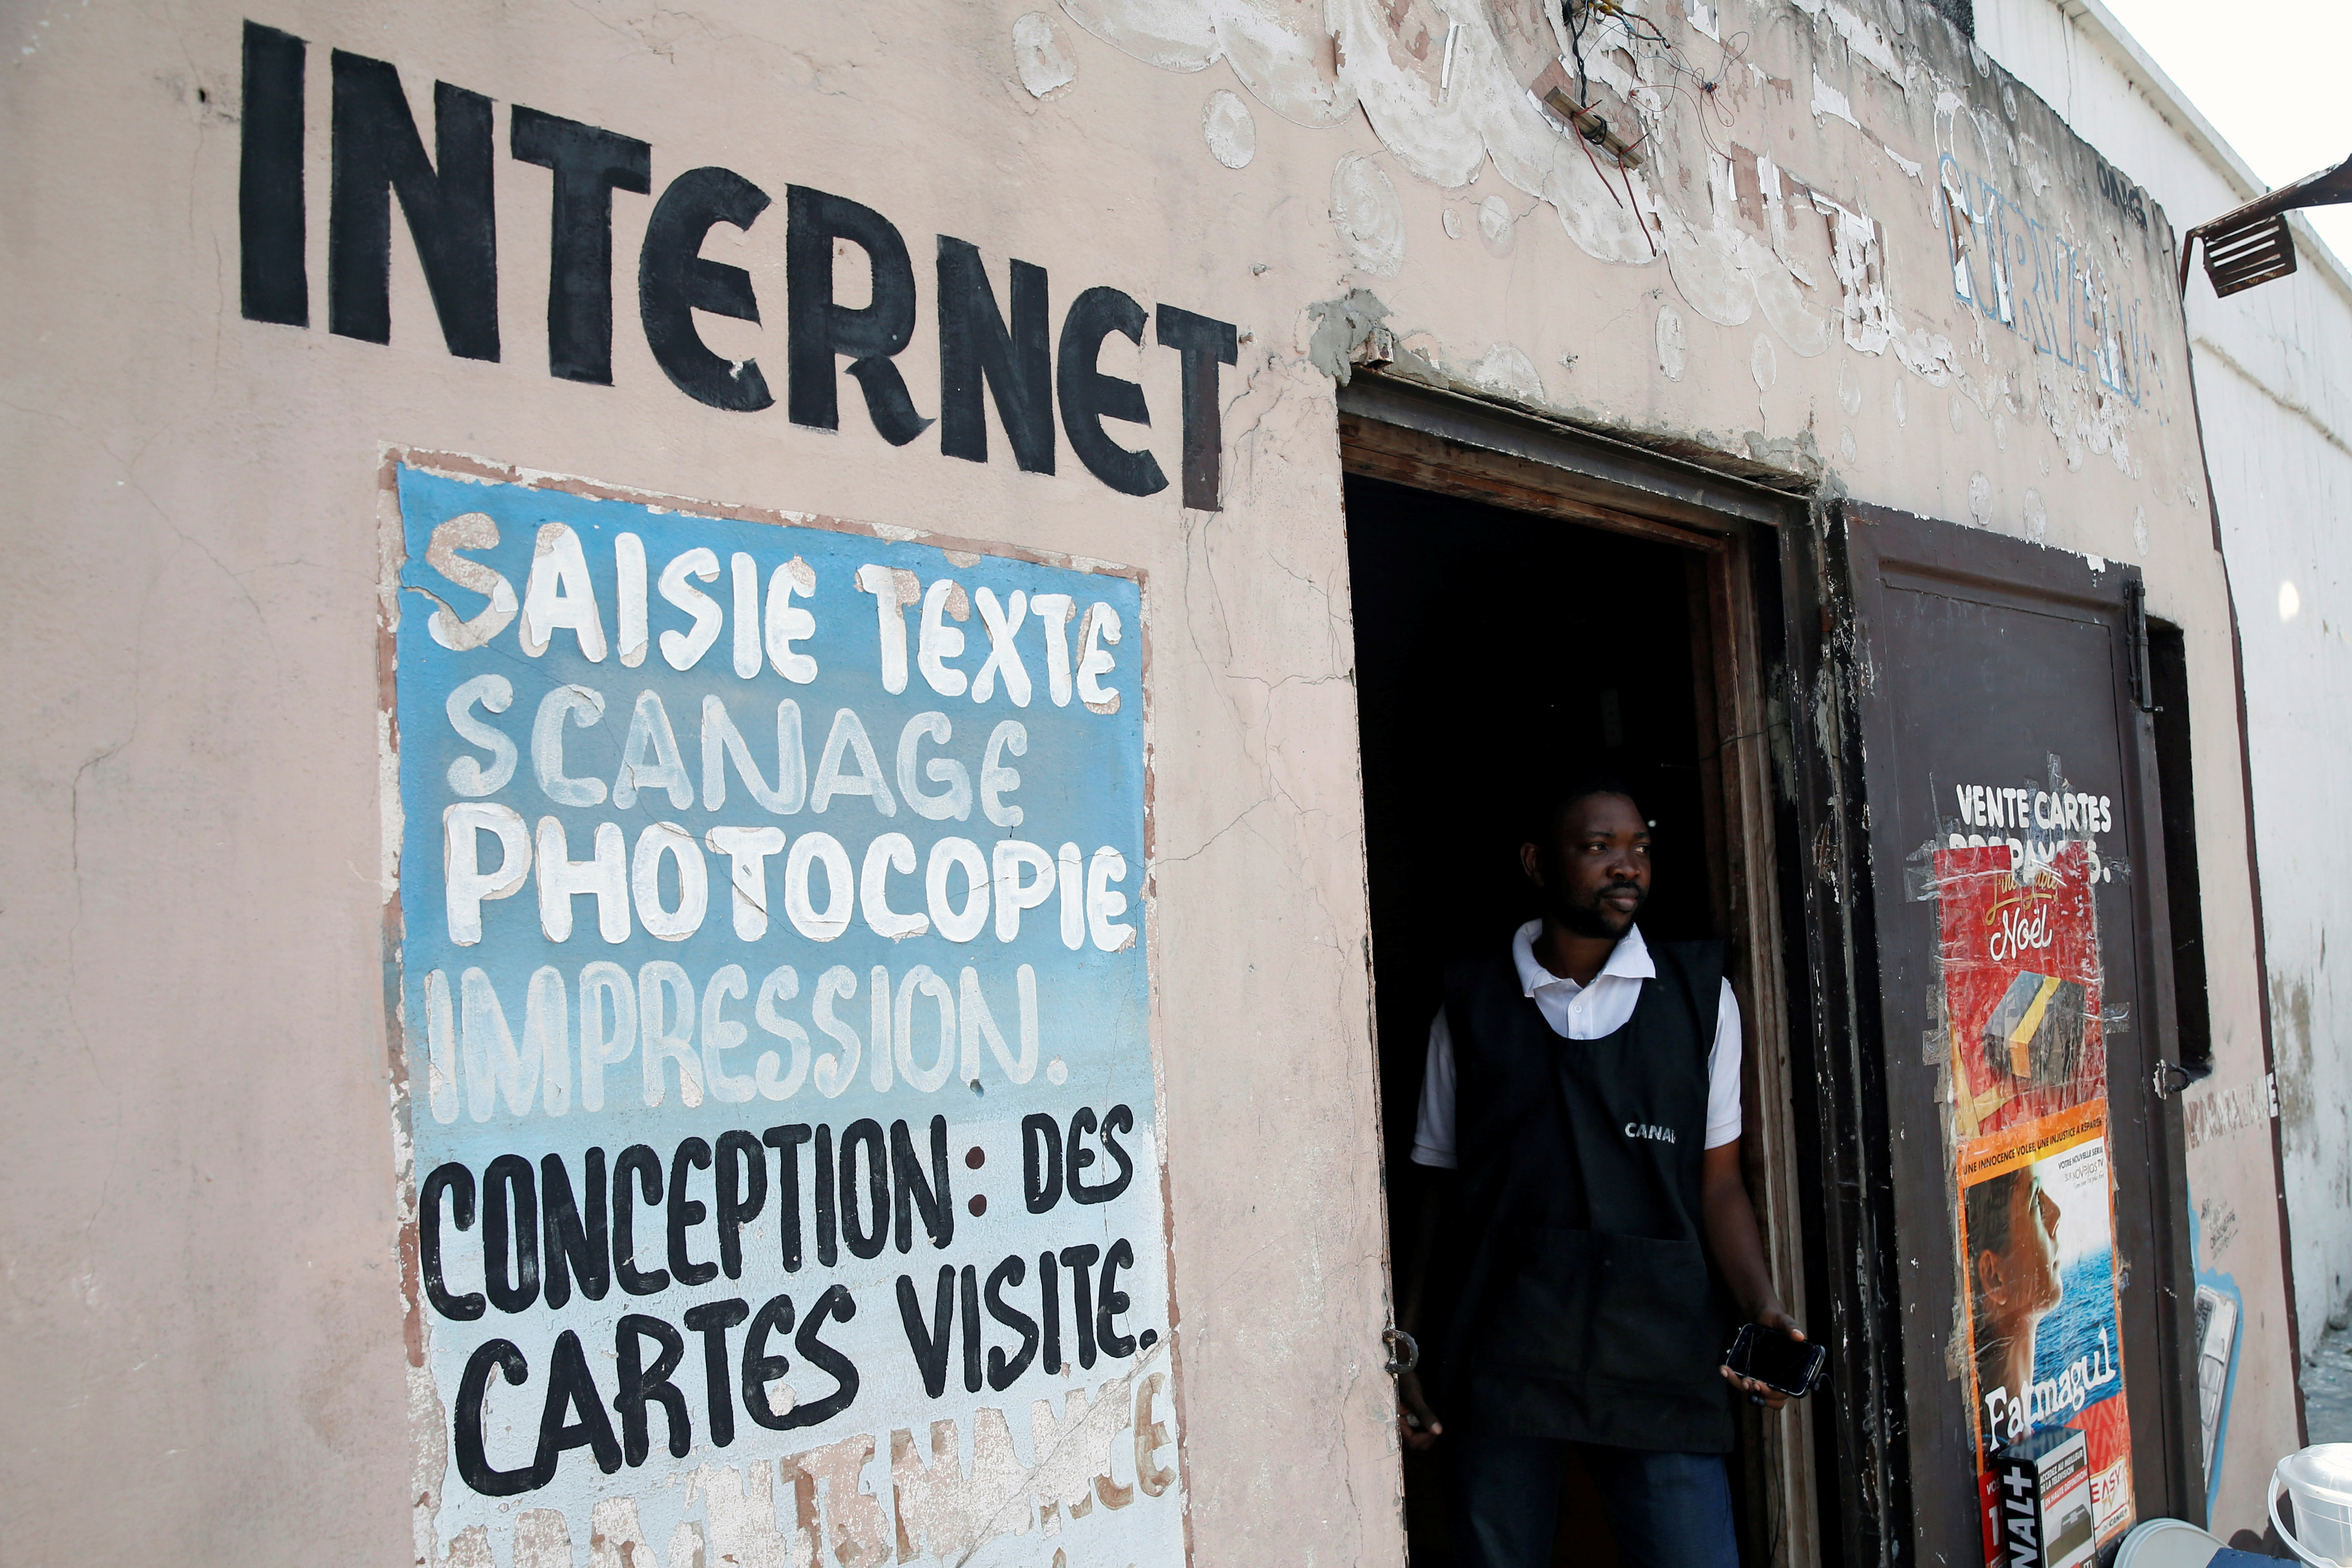 Congolese internet cafe owner Theo stands at the entrance of his empty business in Kinshasa, Democratic Republic of Congo, January 7, 2019. REUTERS/Baz Ratner